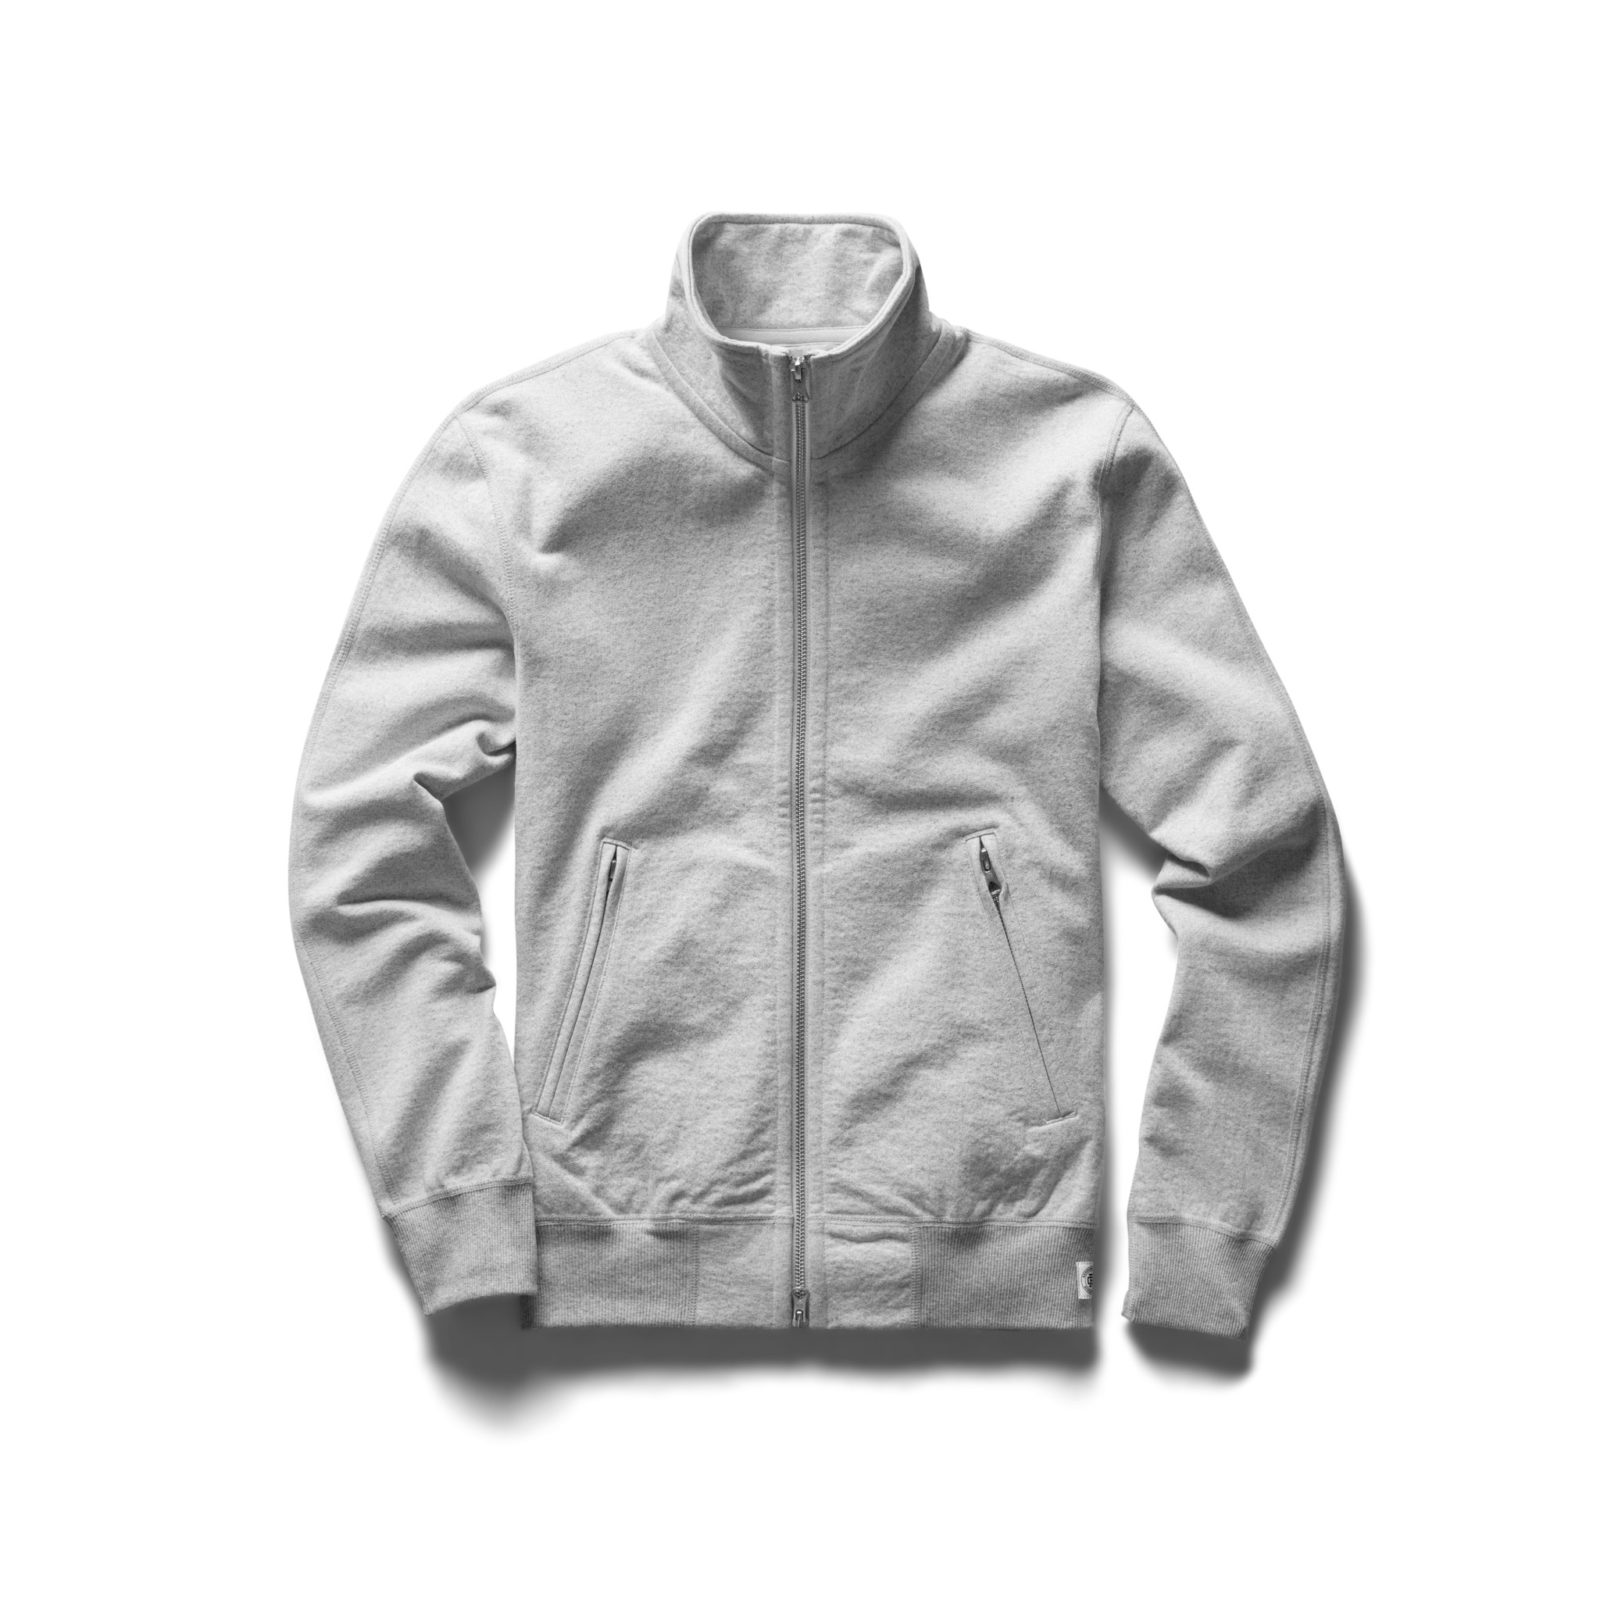 REIGNING CHAMP HEAVYWEIGHT TRACK JACKET